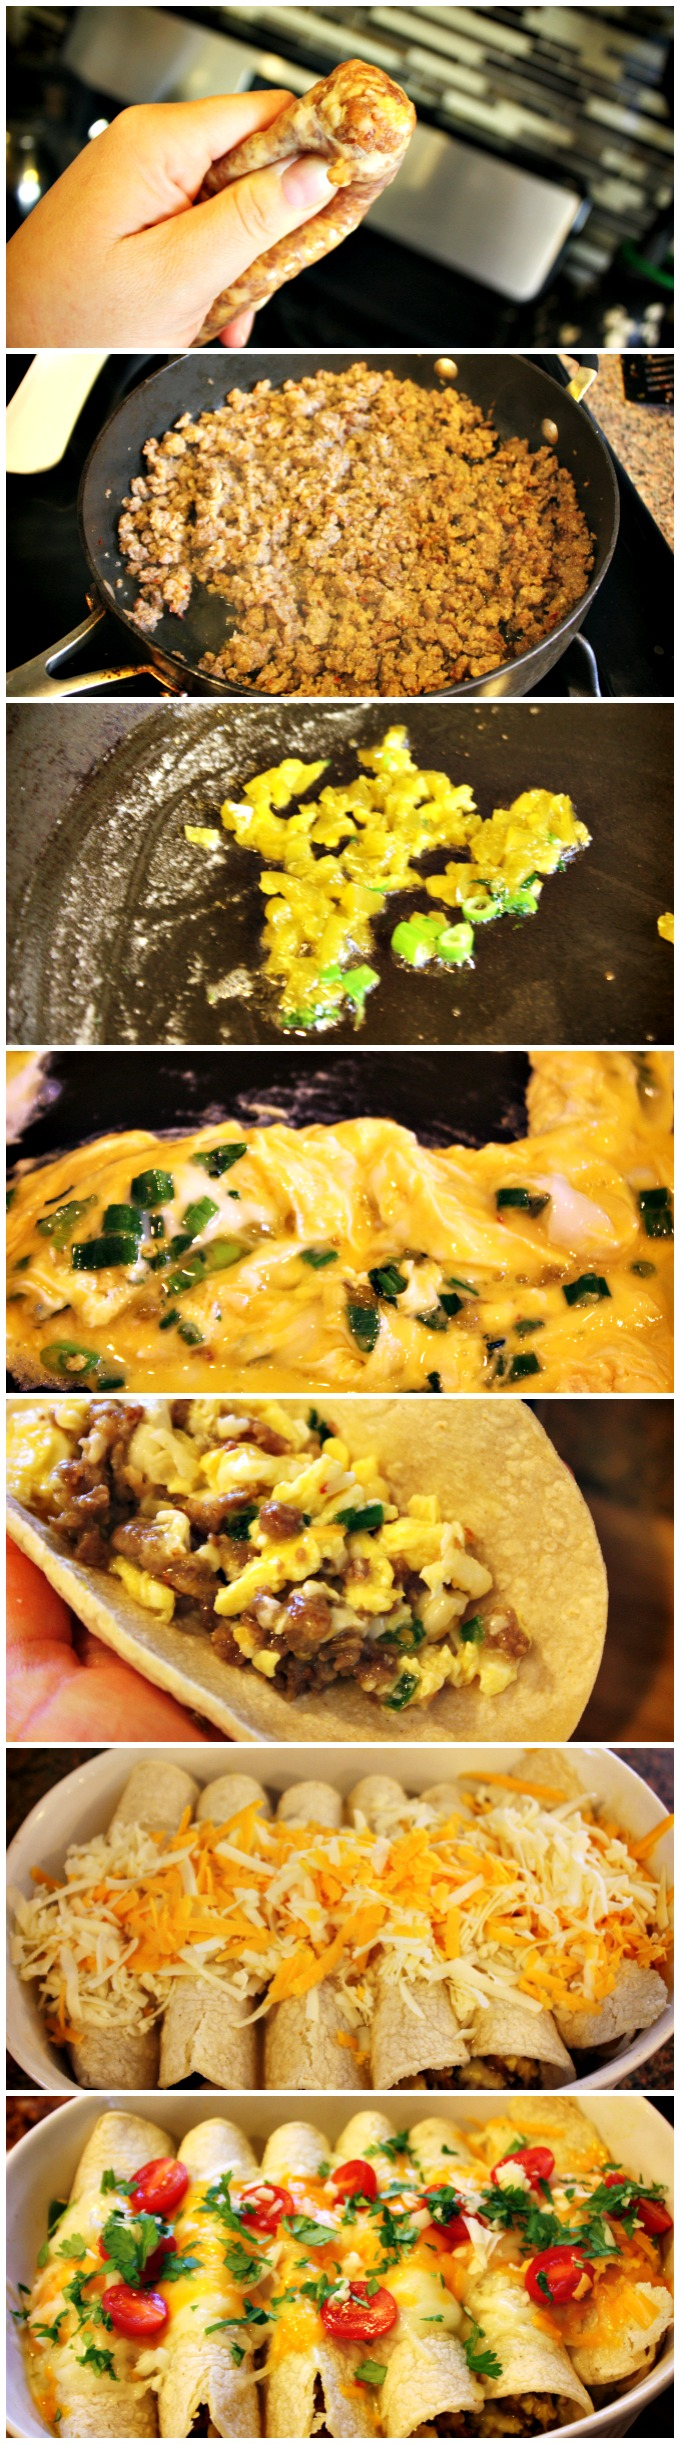 How-to-make-breakfast-enchiladas